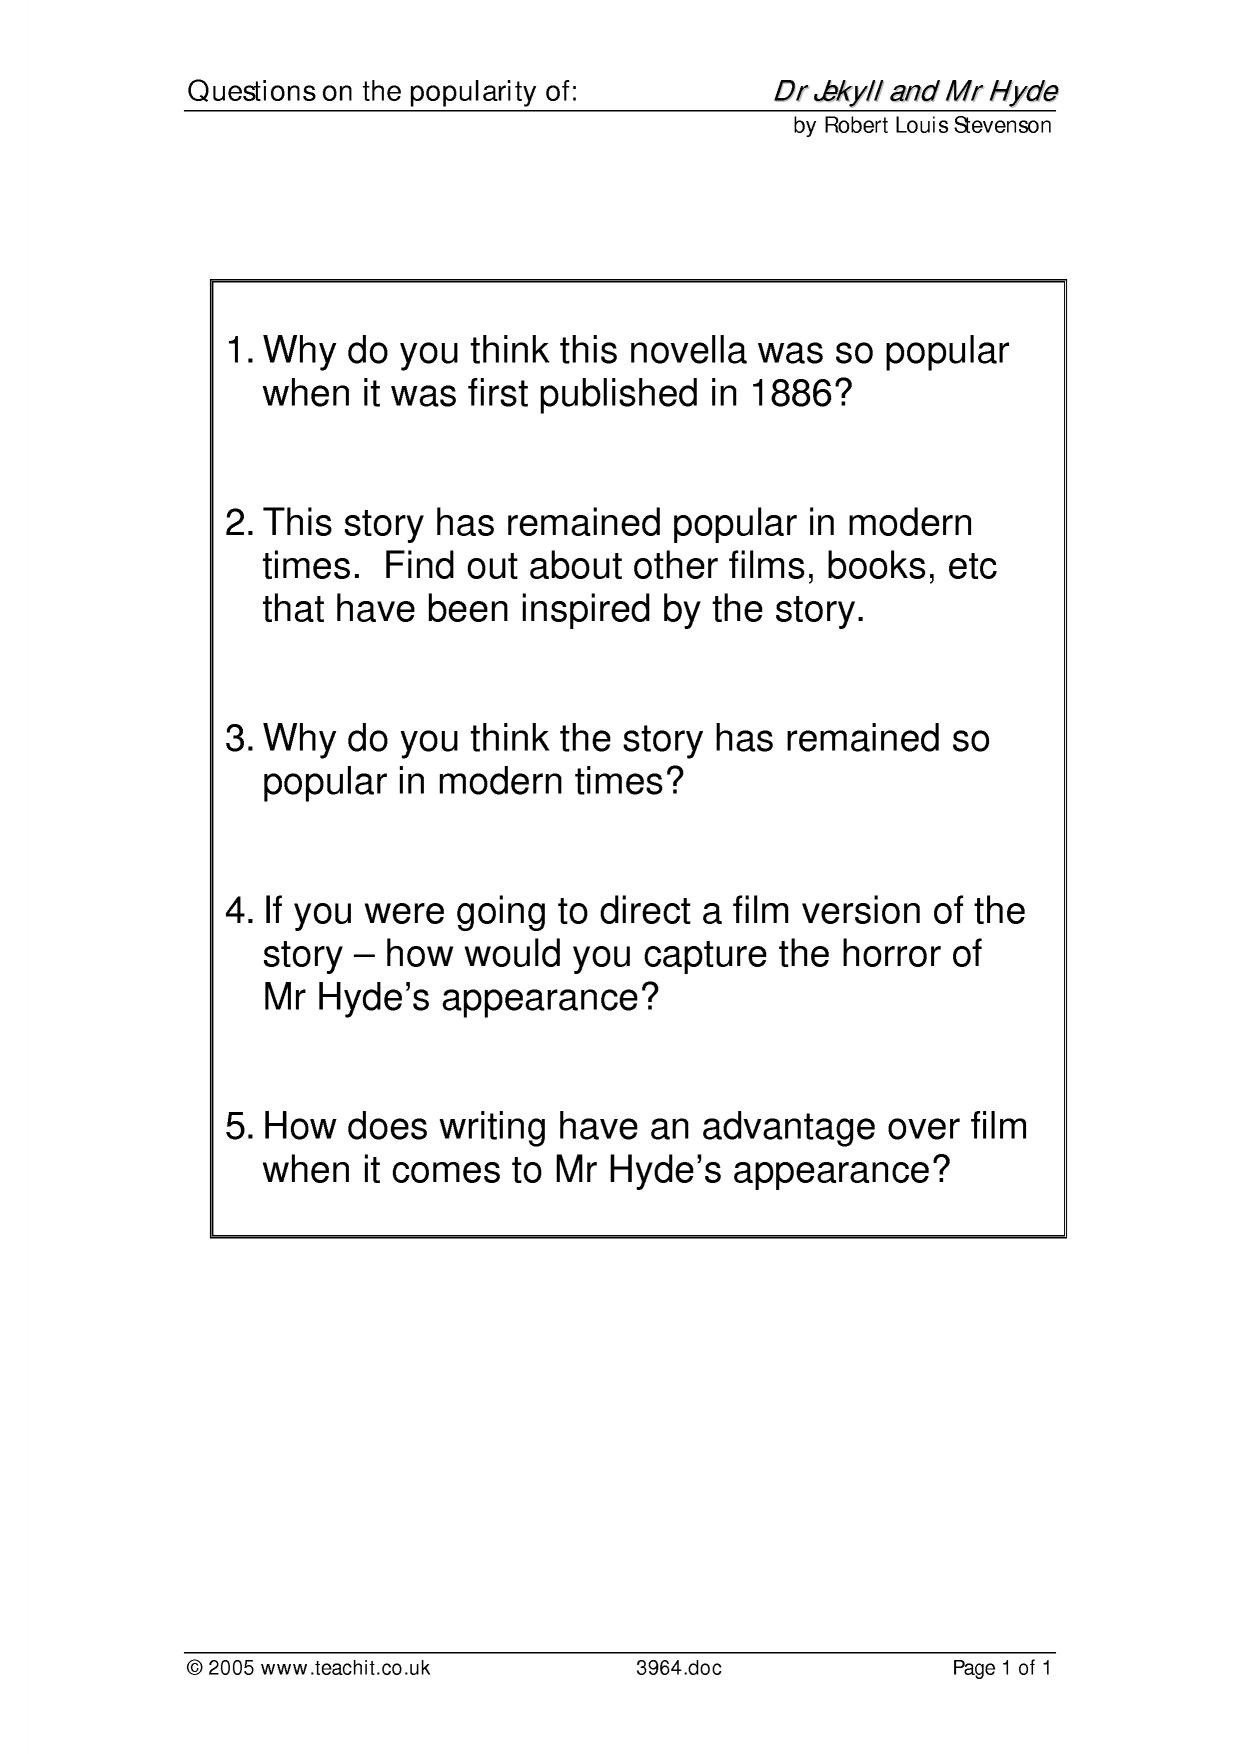 ks dr jekyll and mr hyde the strange case of by robert louis 1 preview ks4 dr jekyll and mr hyde